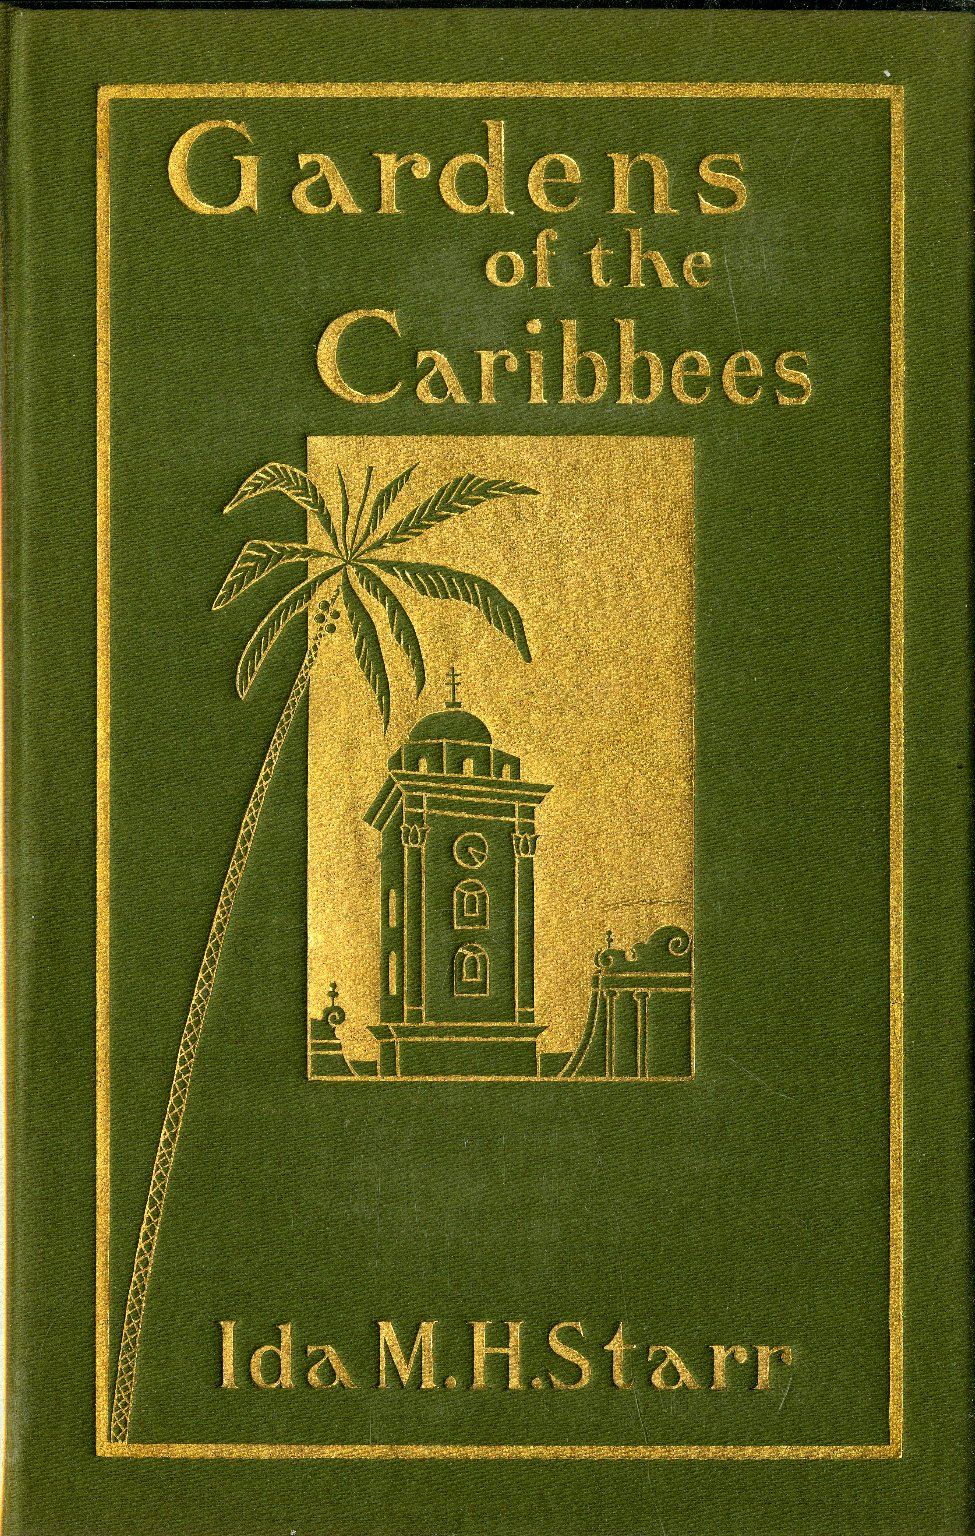 Gardens of the Caribbees